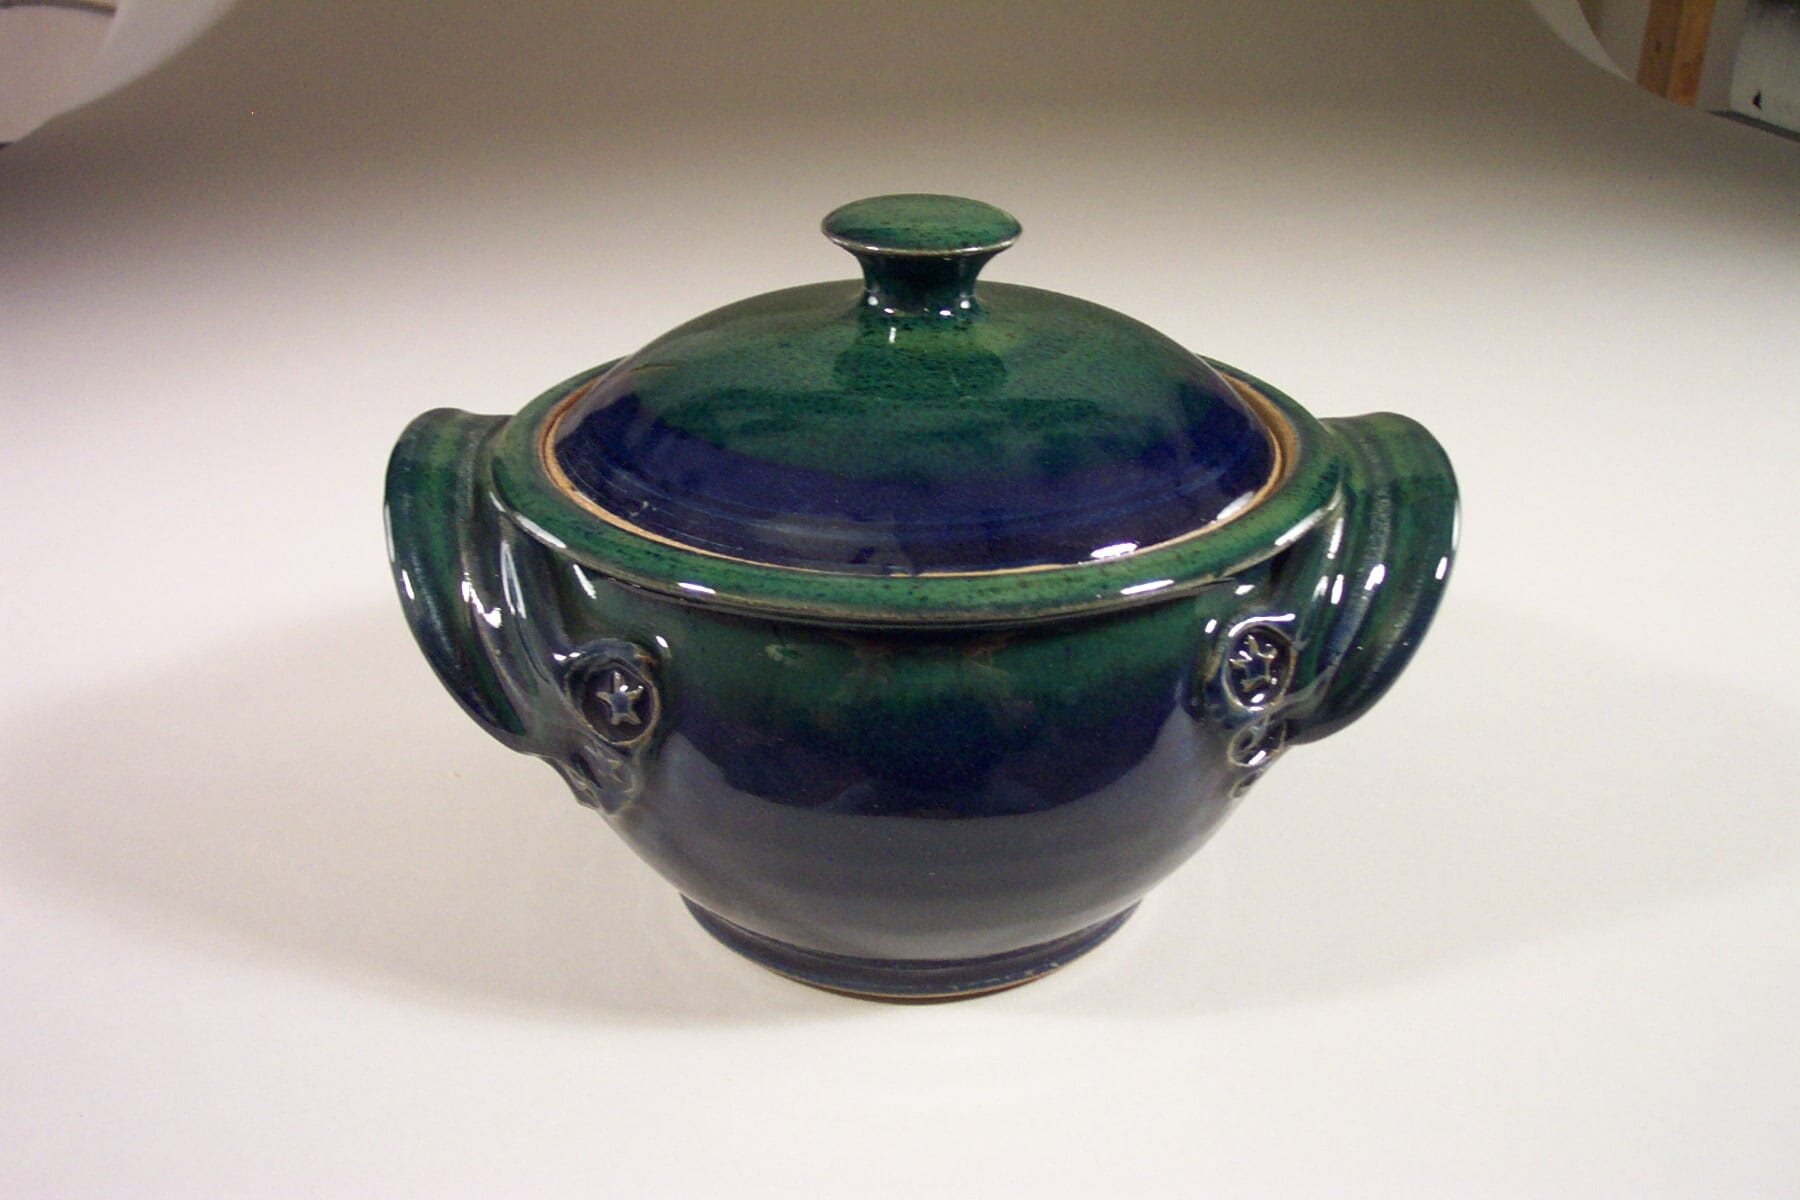 Small Casserole with Lid Smooth Design in Dark Blue with Green Glaze